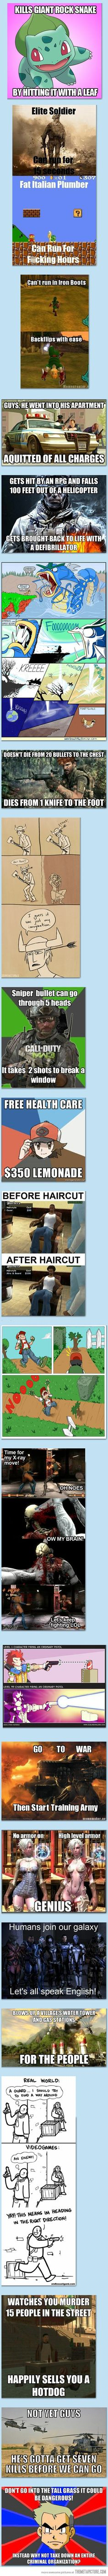 Video Game Logic #videogamememes